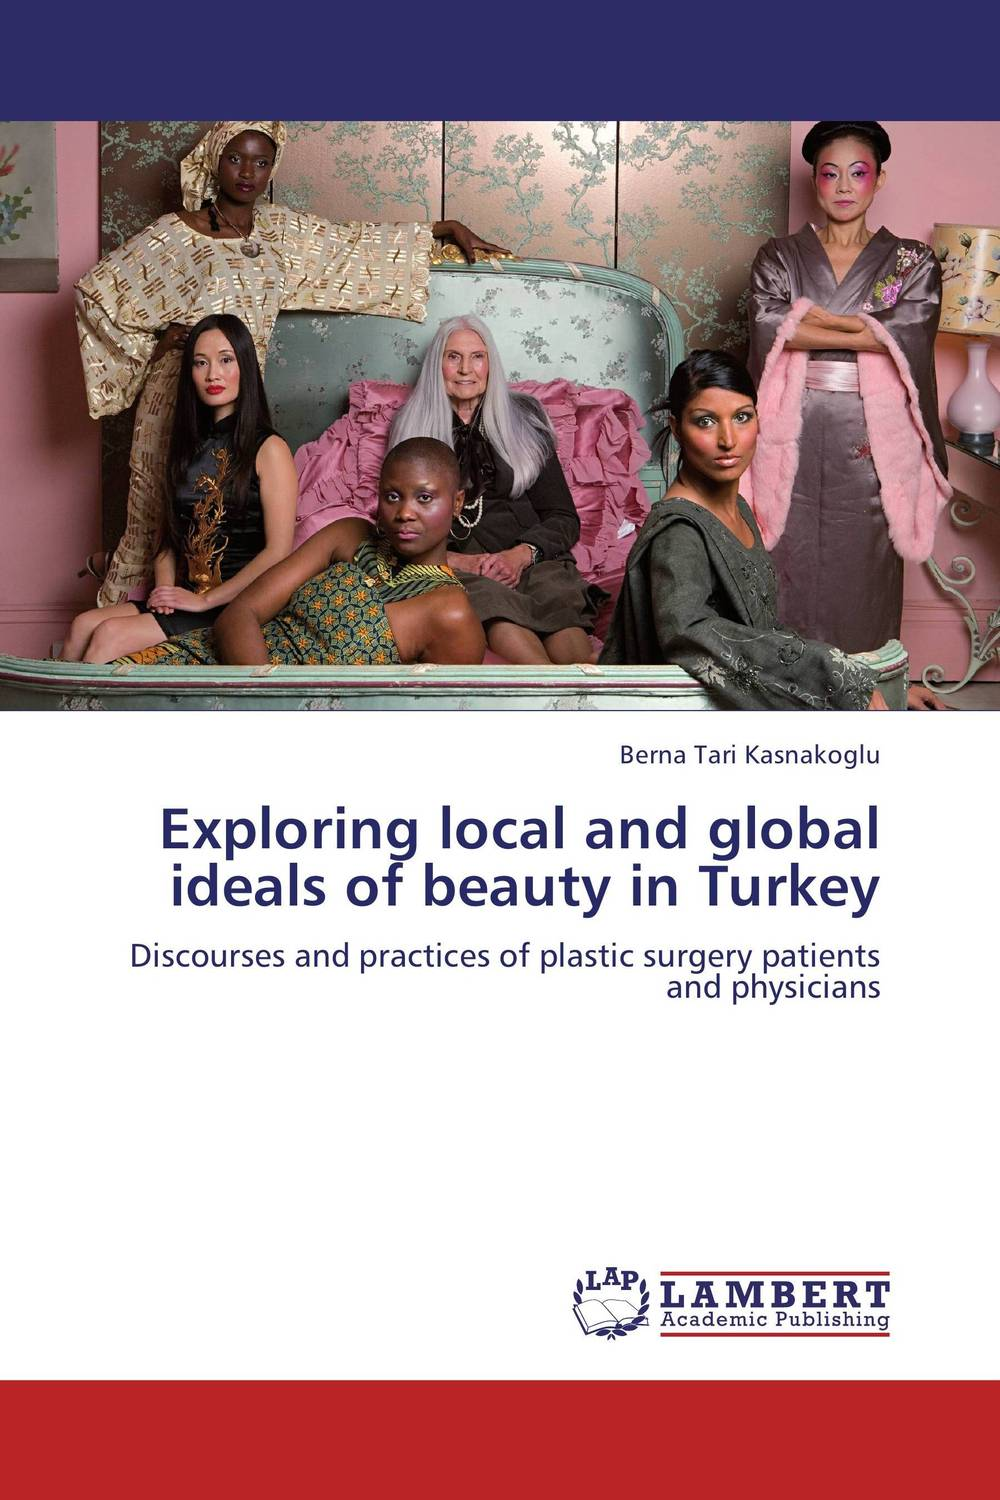 Exploring local and global ideals of beauty in Turkey the application of global ethics to solve local improprieties